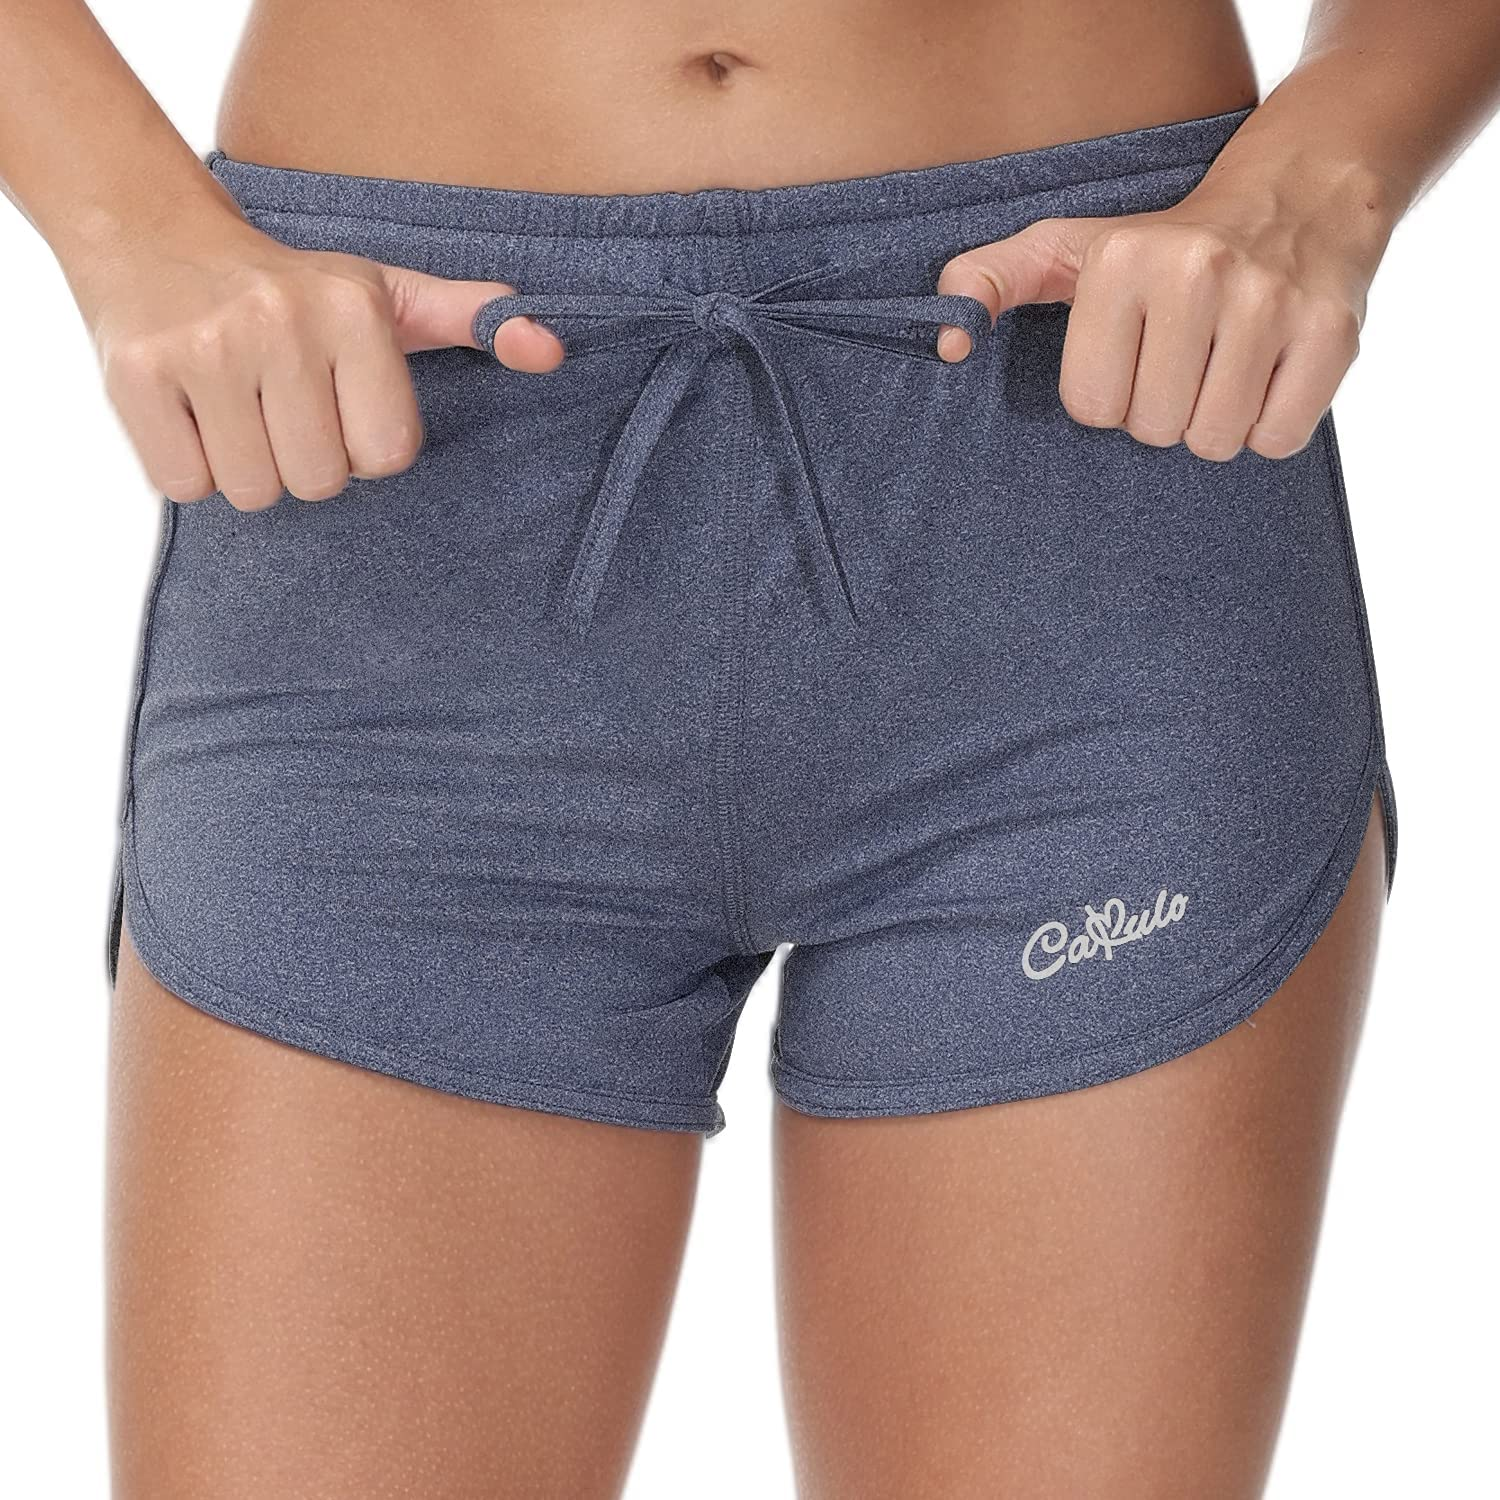 Cakulo Women's Lounge Dolphin Simone Shorts Yoga Workout Running Active Booty Casual Shorts 3